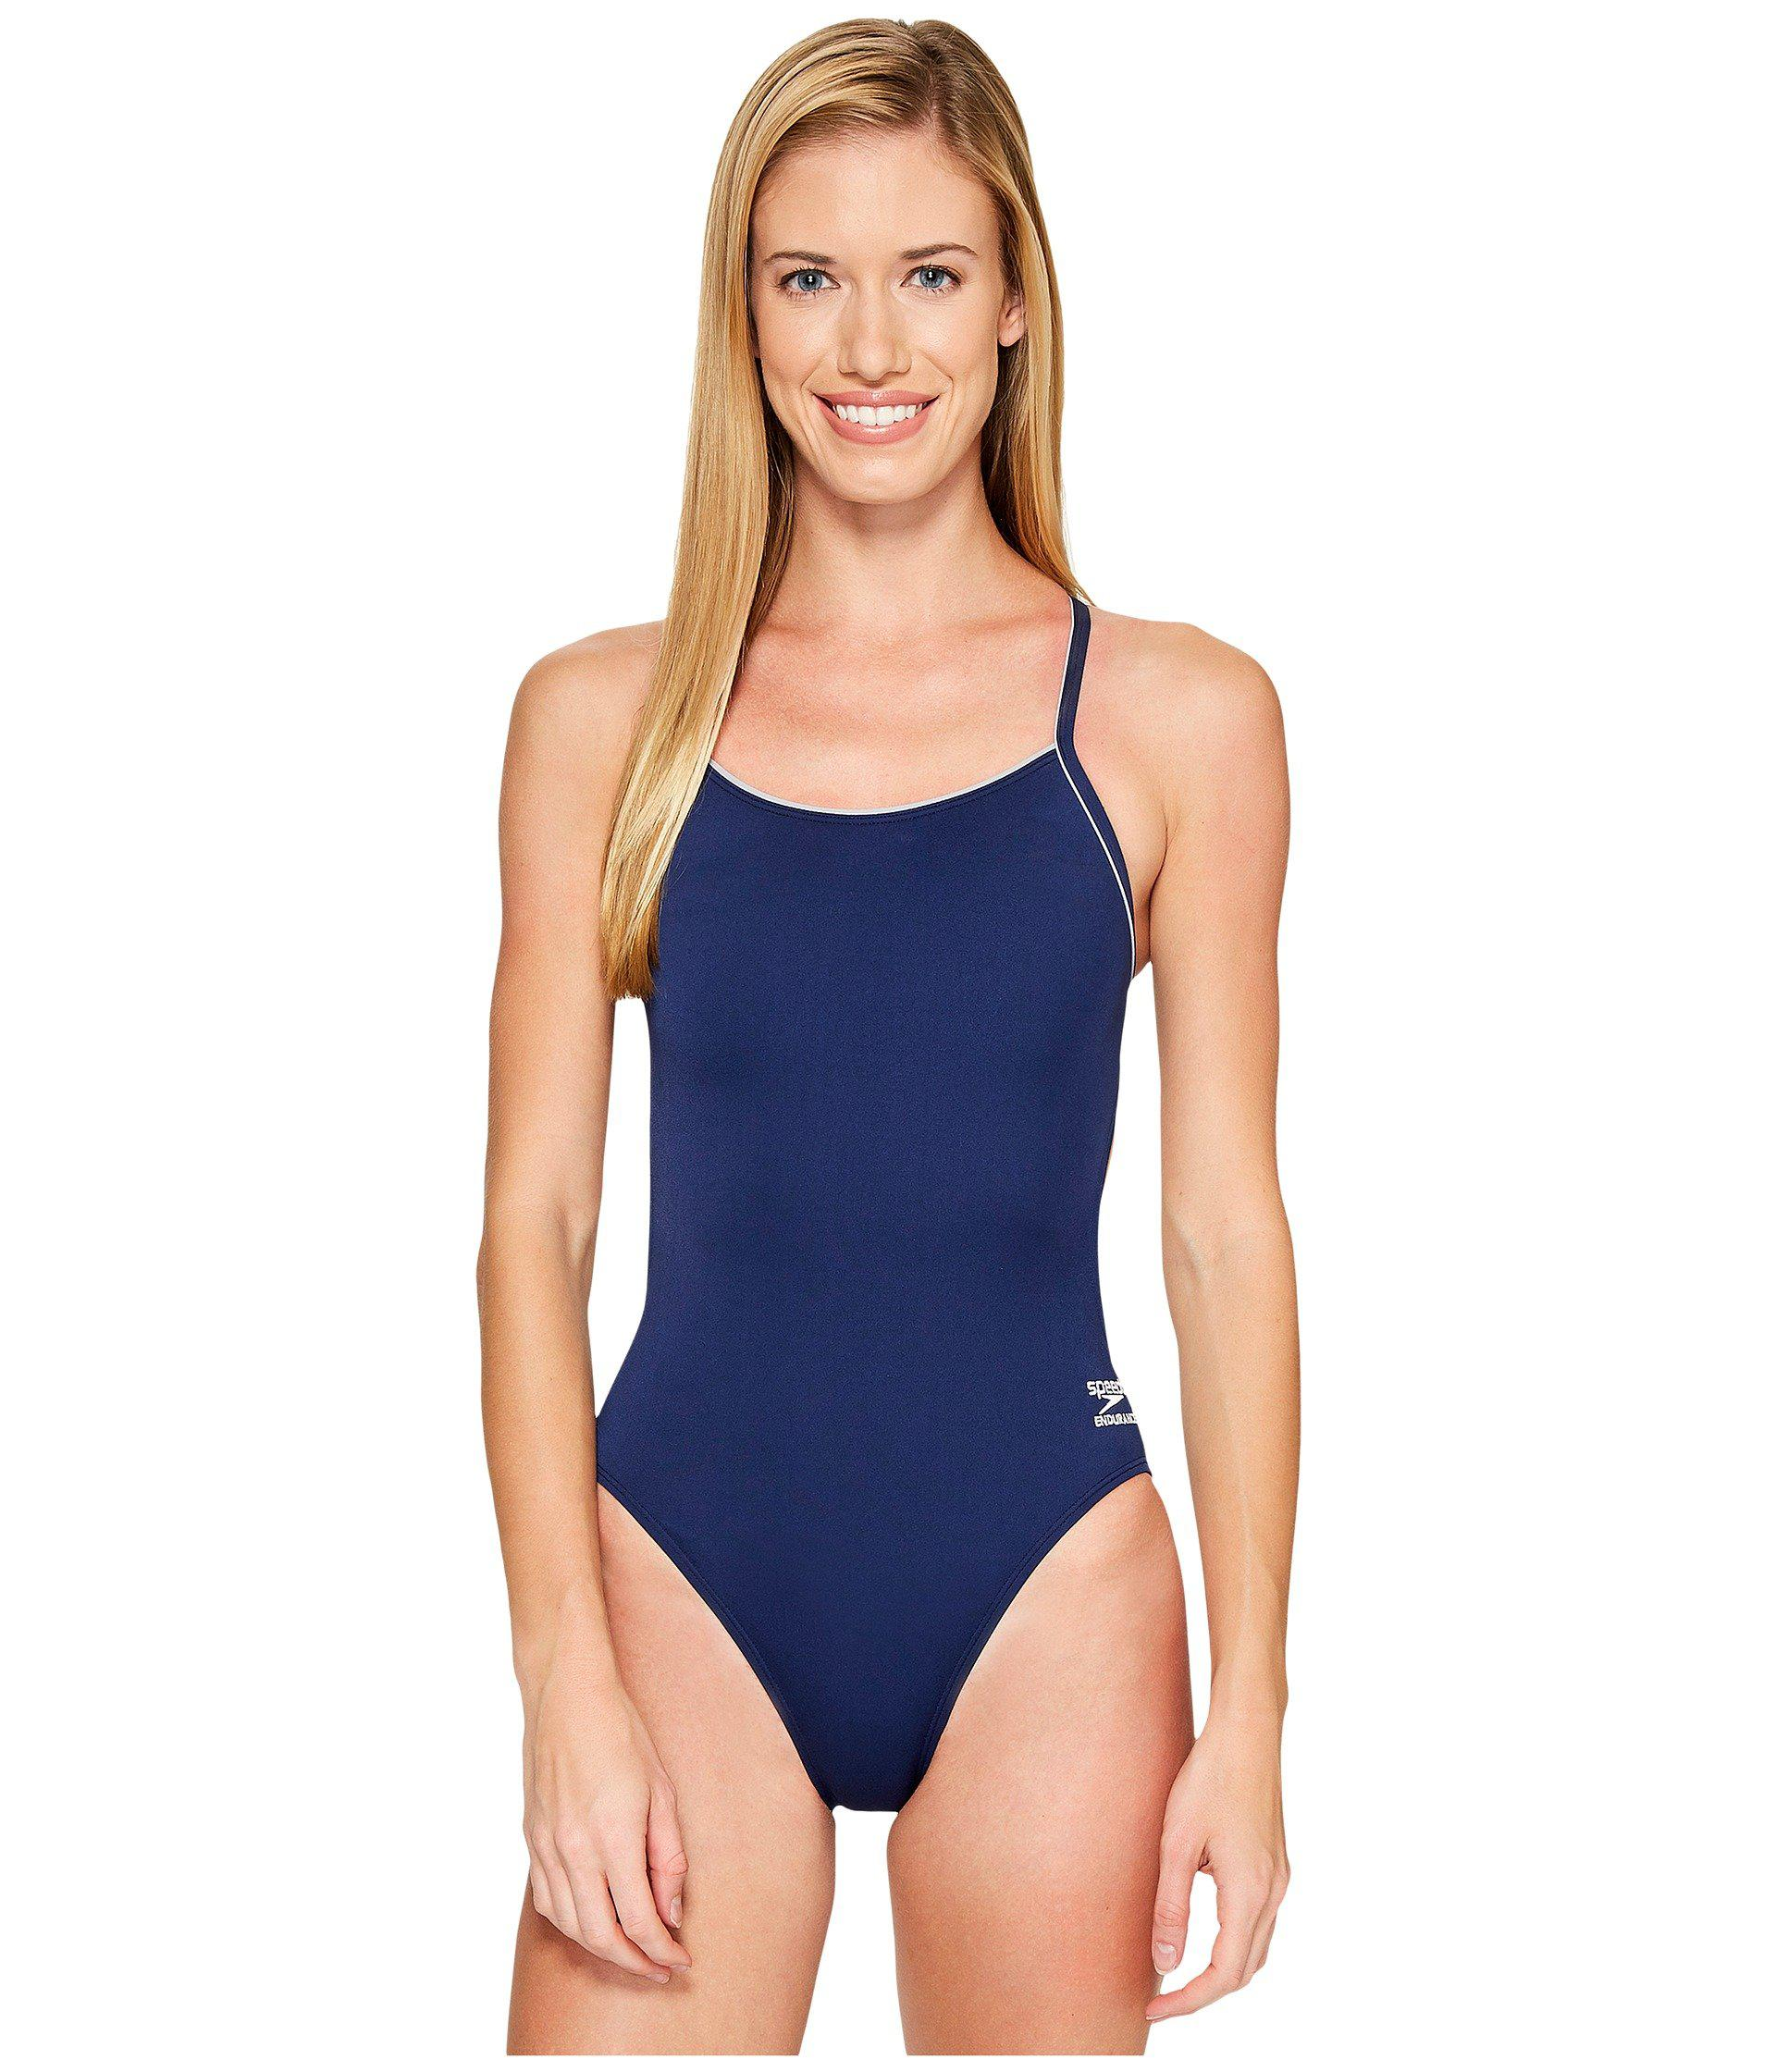 31a87c26970e3 Lyst - Speedo Solid (r) Endurance + Thin Strap (natical Navy ...